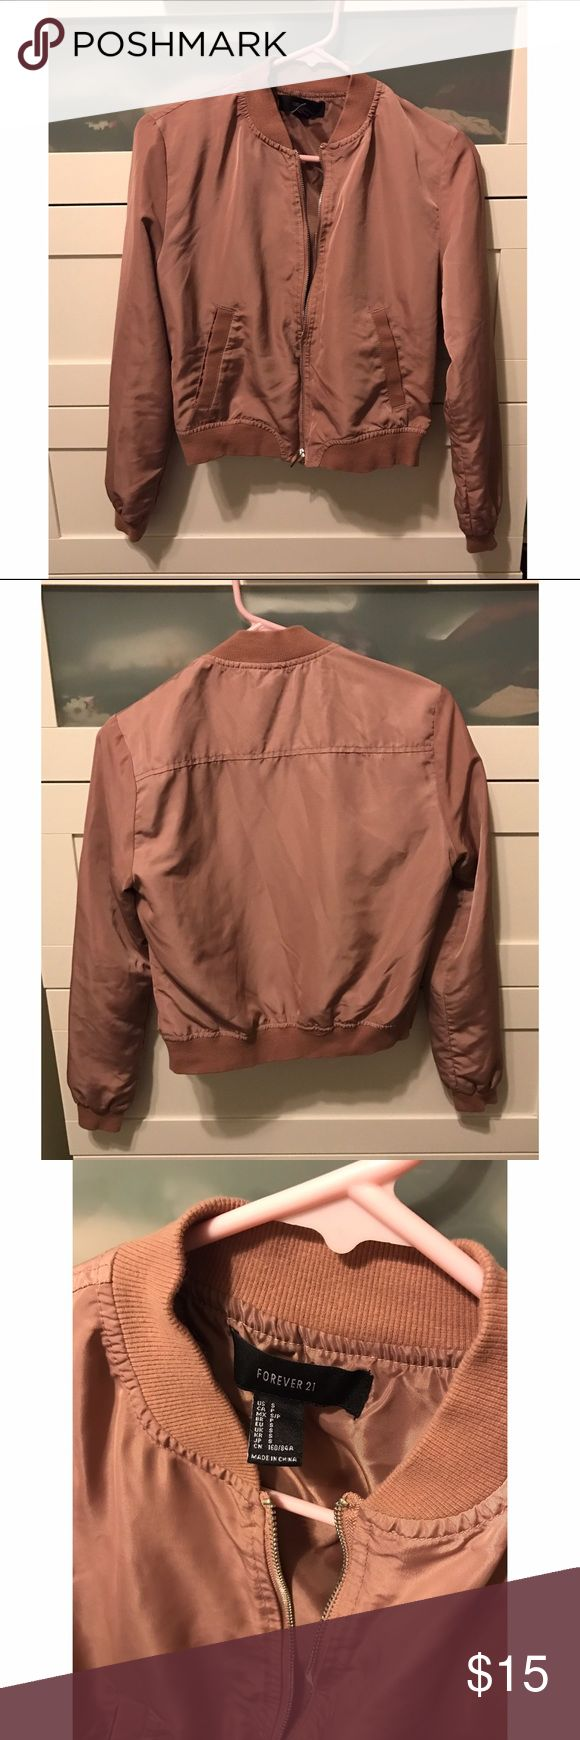 Forever 21 Bomber Jacket Used once, great condition. Lightweight bomber jacket with zip up closure and 2 front pockets. Blush color. Forever 21 Jackets & Coats